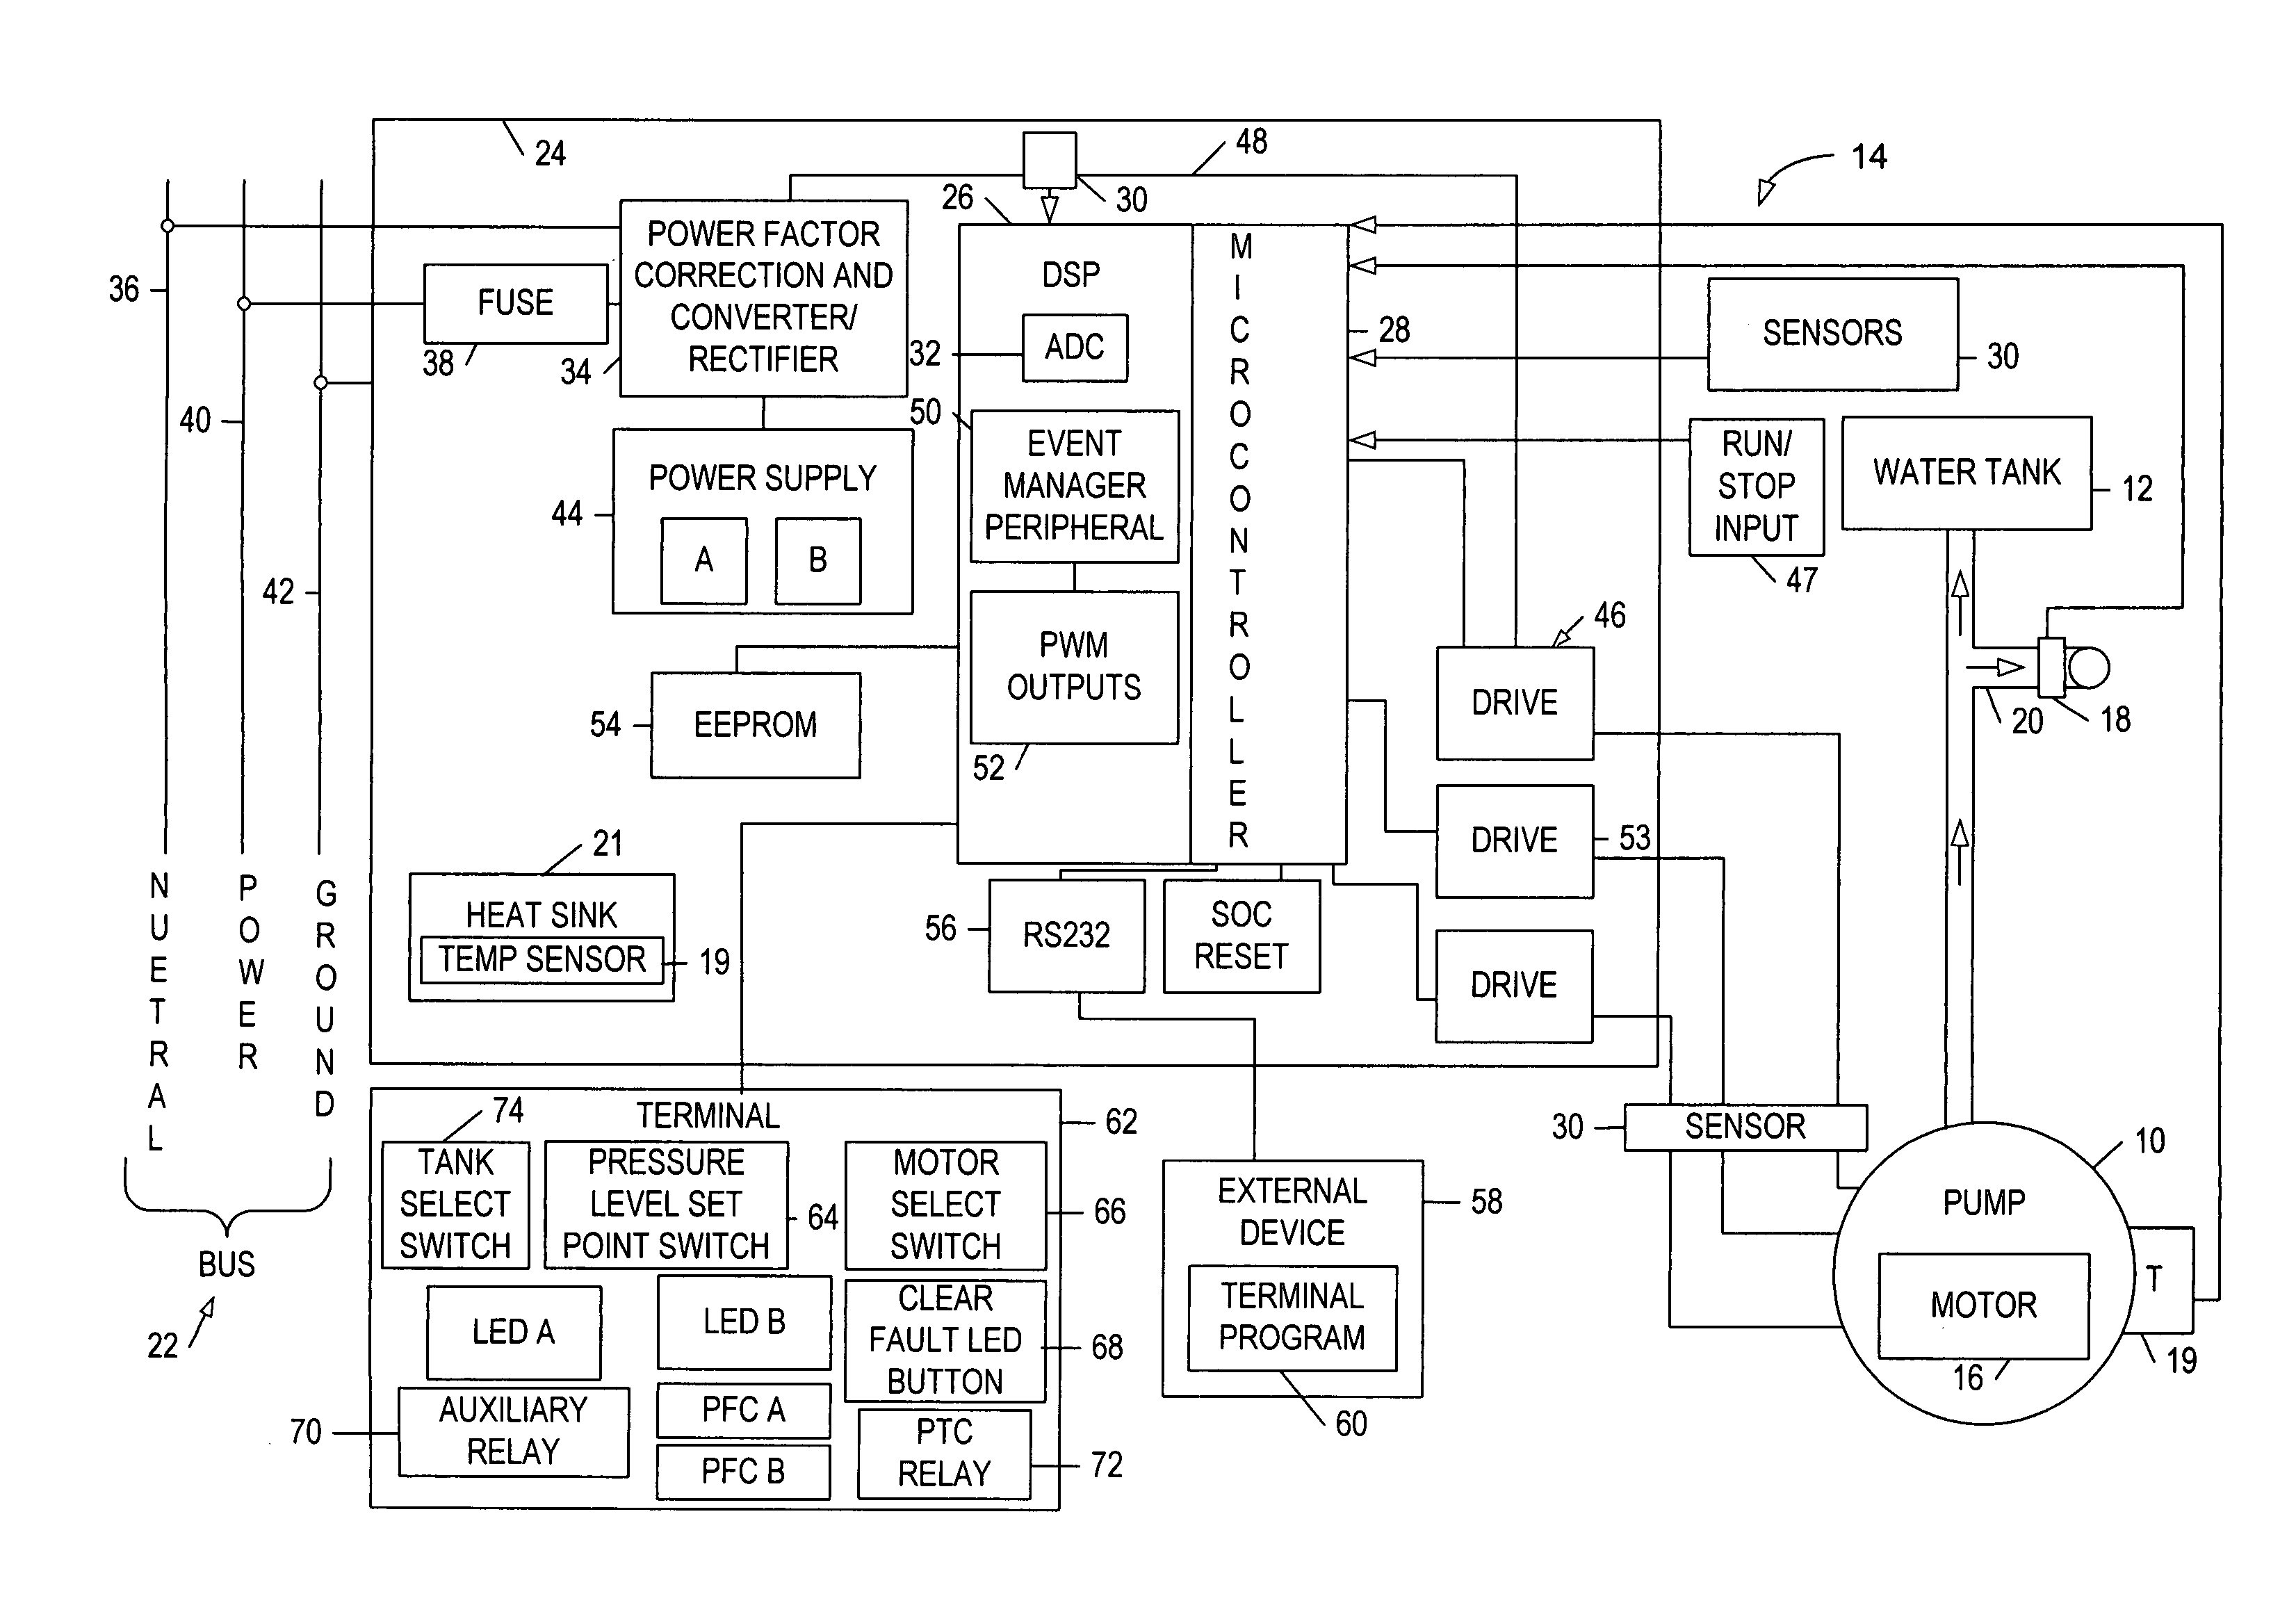 grundfos cu300 wiring diagram   29 wiring diagram images